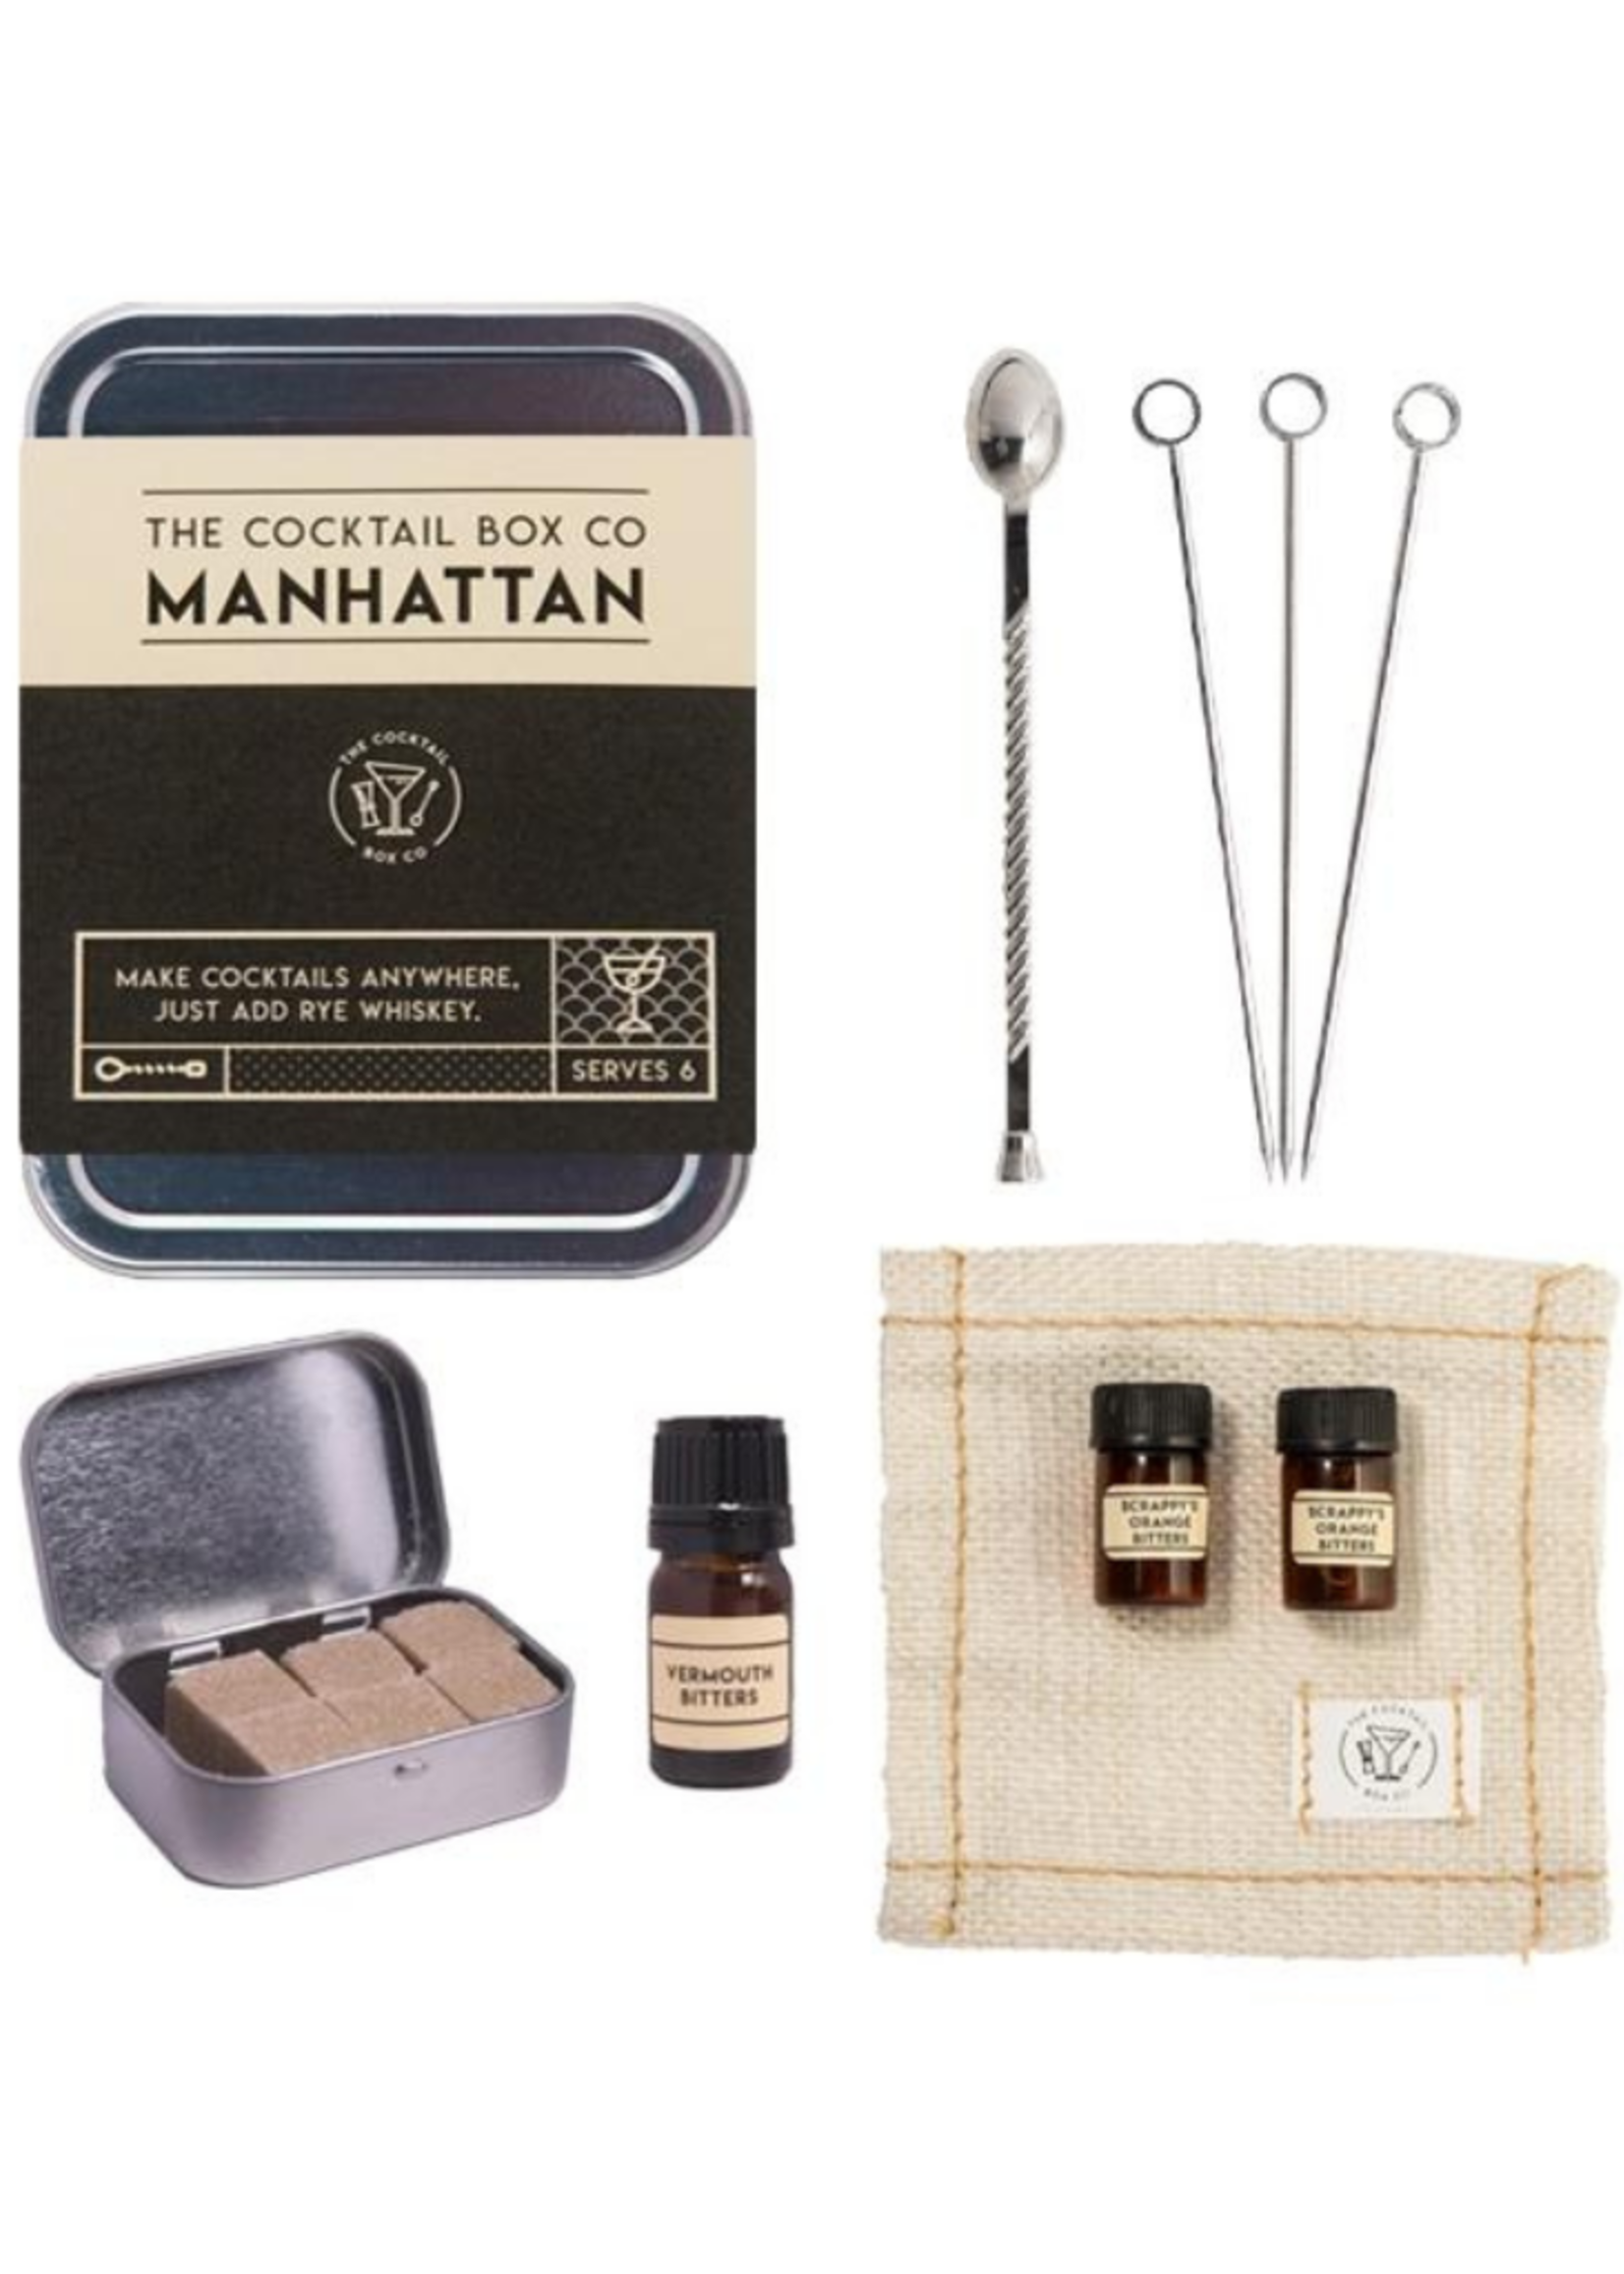 The Cocktail Box Co. The Manhattan Cocktail Kit